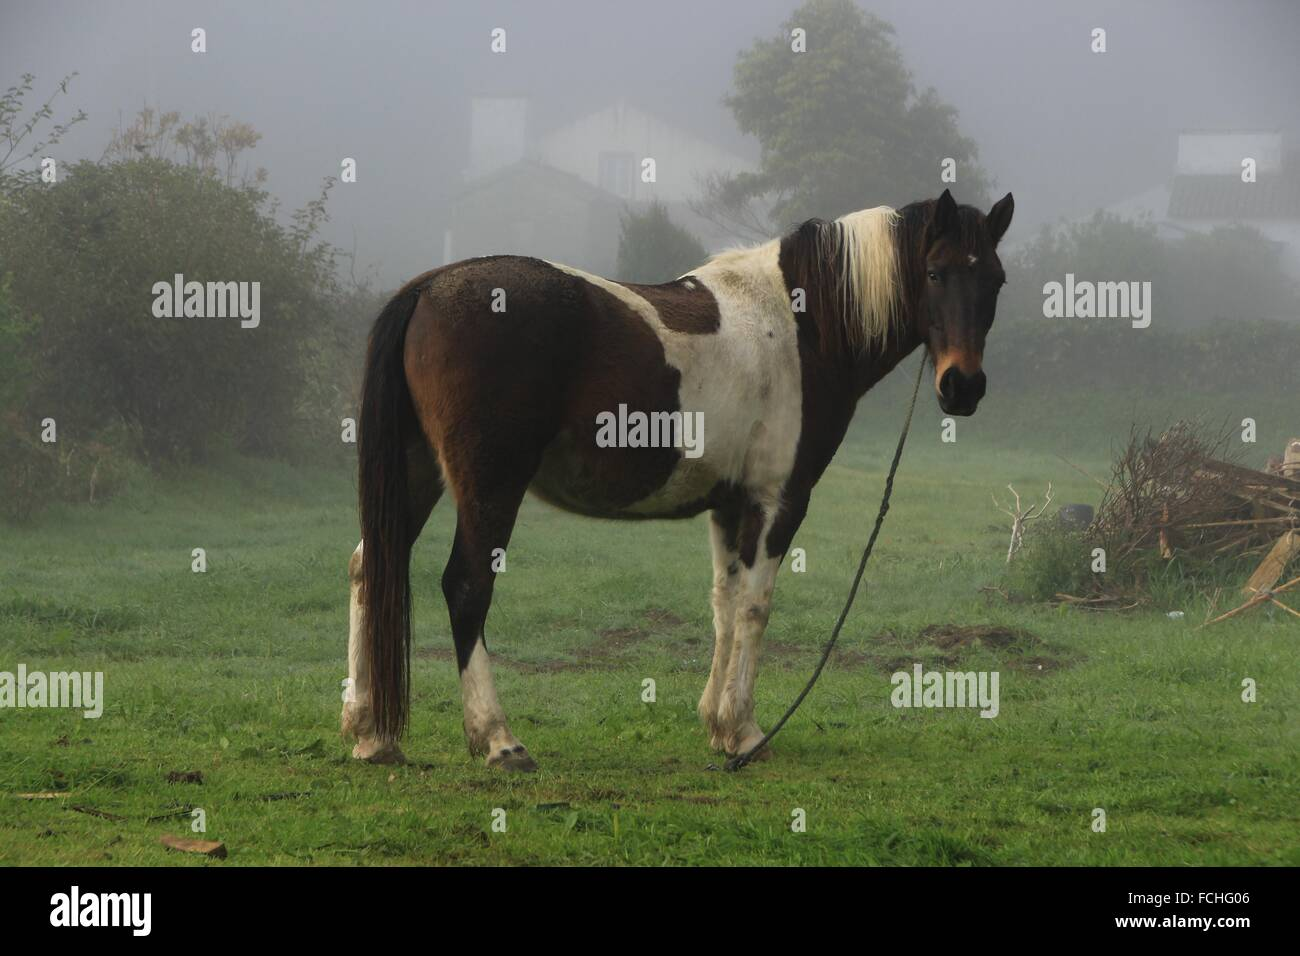 a horse in a misty morning in sete cidades sao miguel island stock